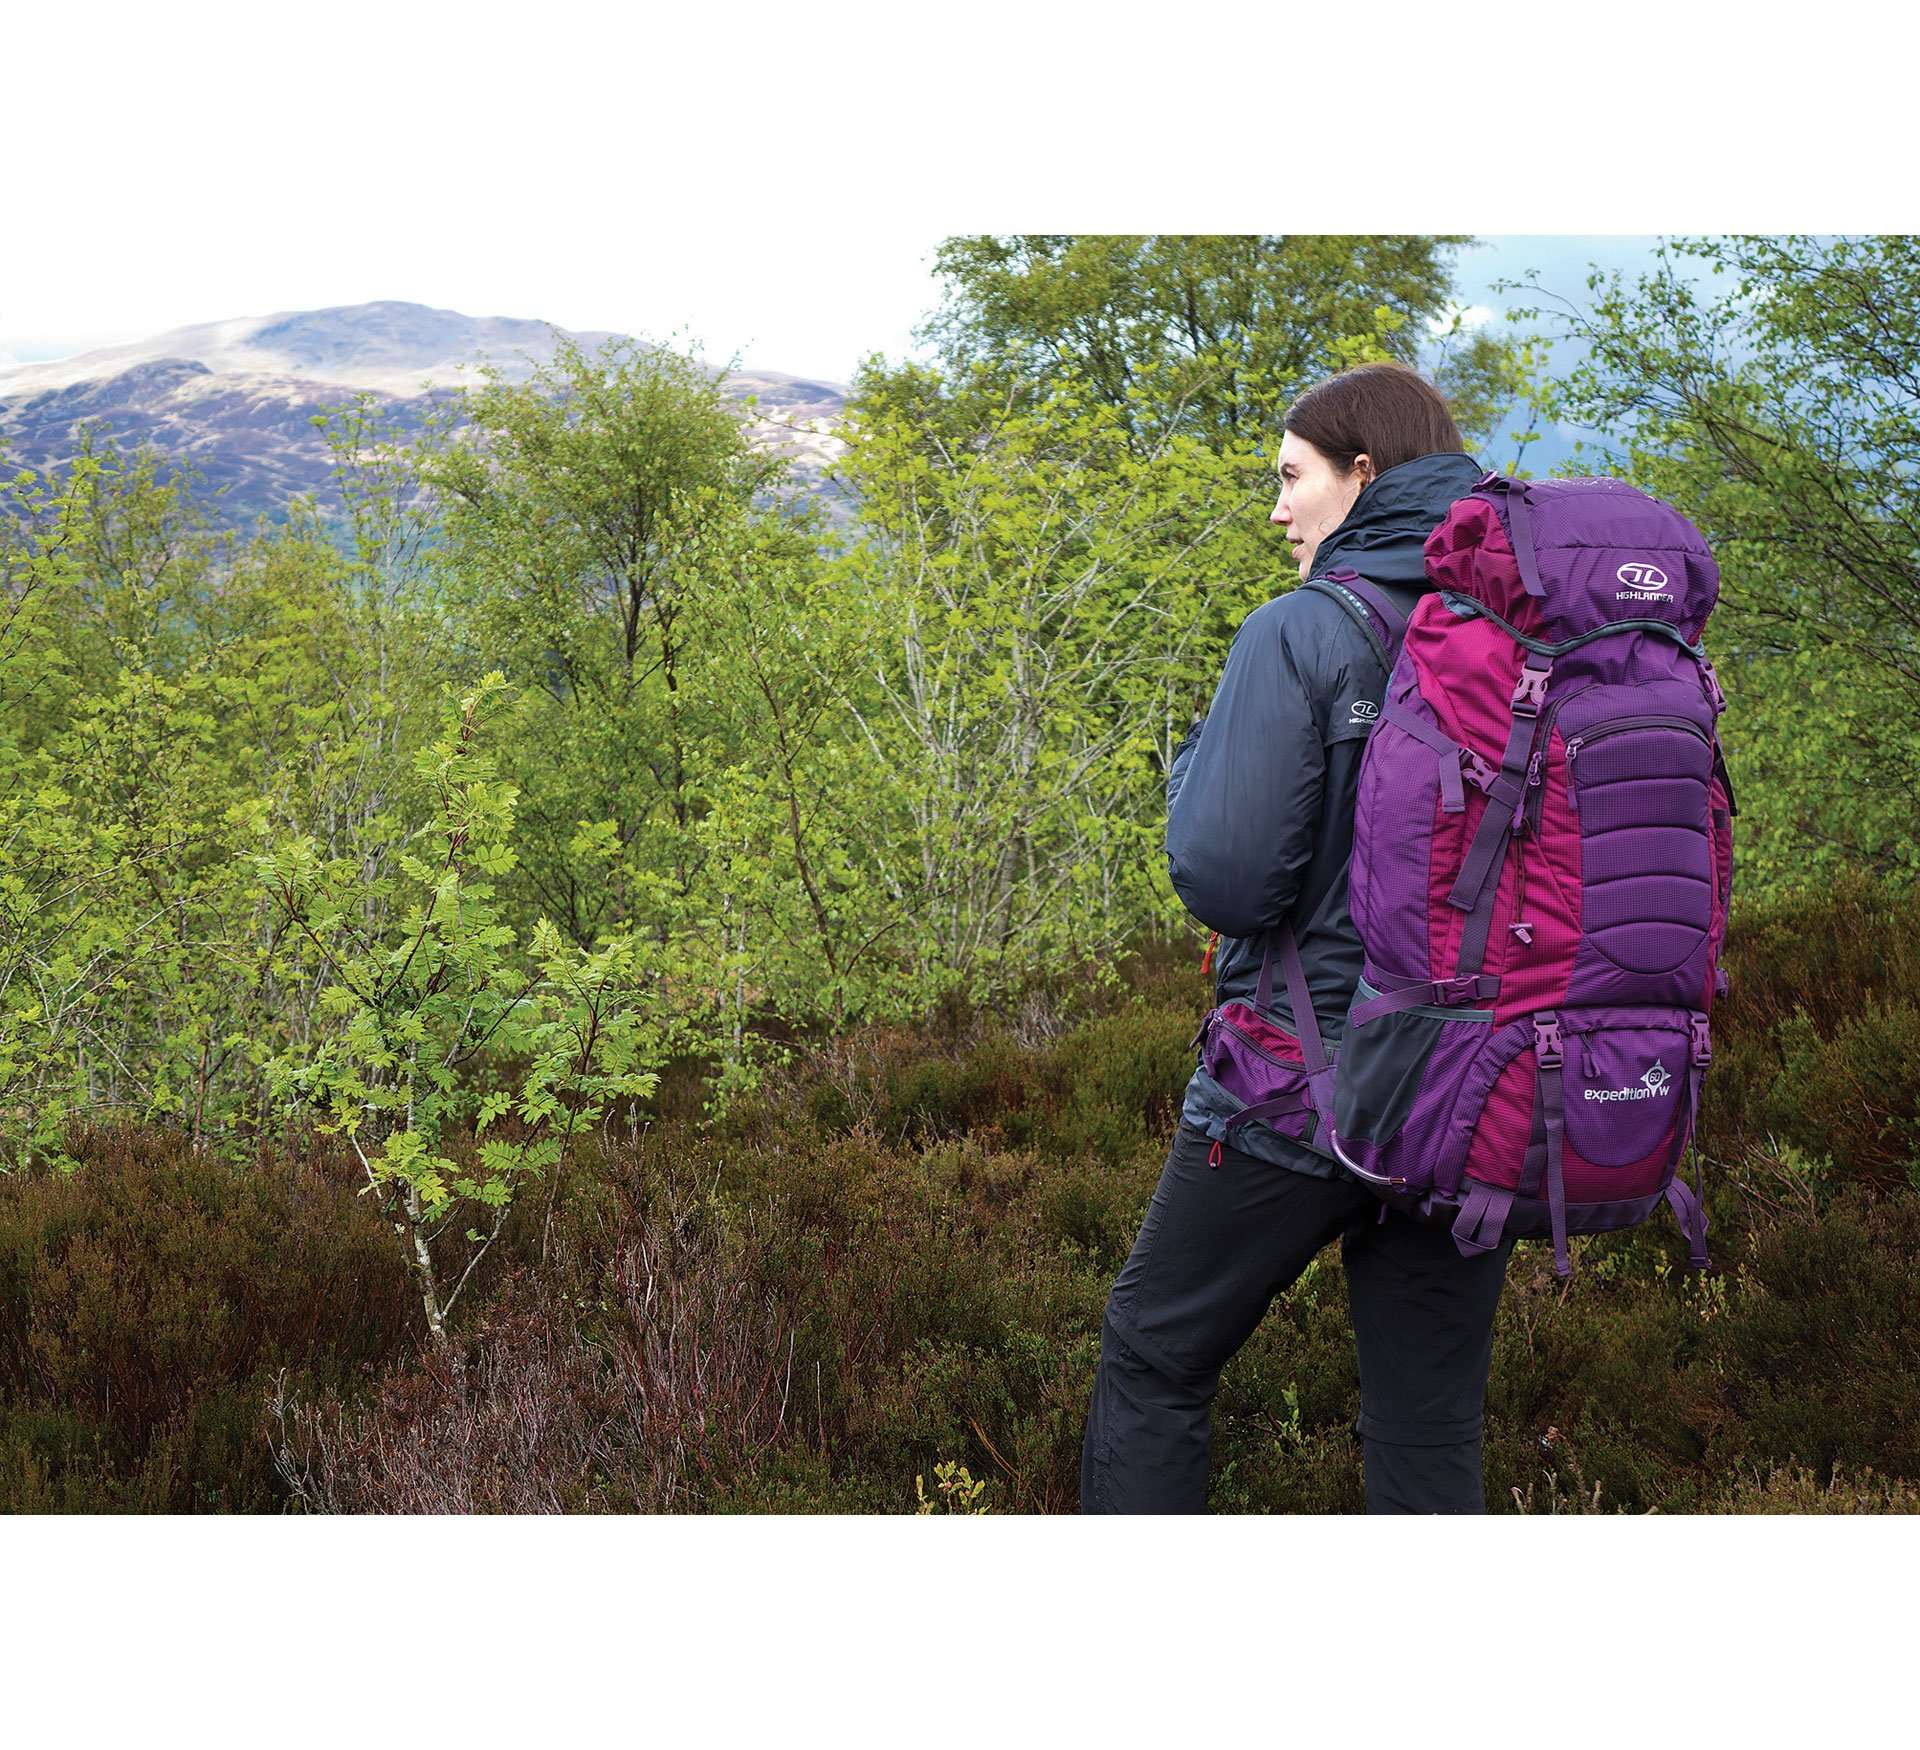 Highlander Expedition Rucksack ꟷ 60L, 65L & 85L Quality Backpack ꟷ Ideal for Hiking, Backpacking, DofE, Scouting Trips ꟷ Men & Women ꟷ Blue, Black, Red & Purple 3